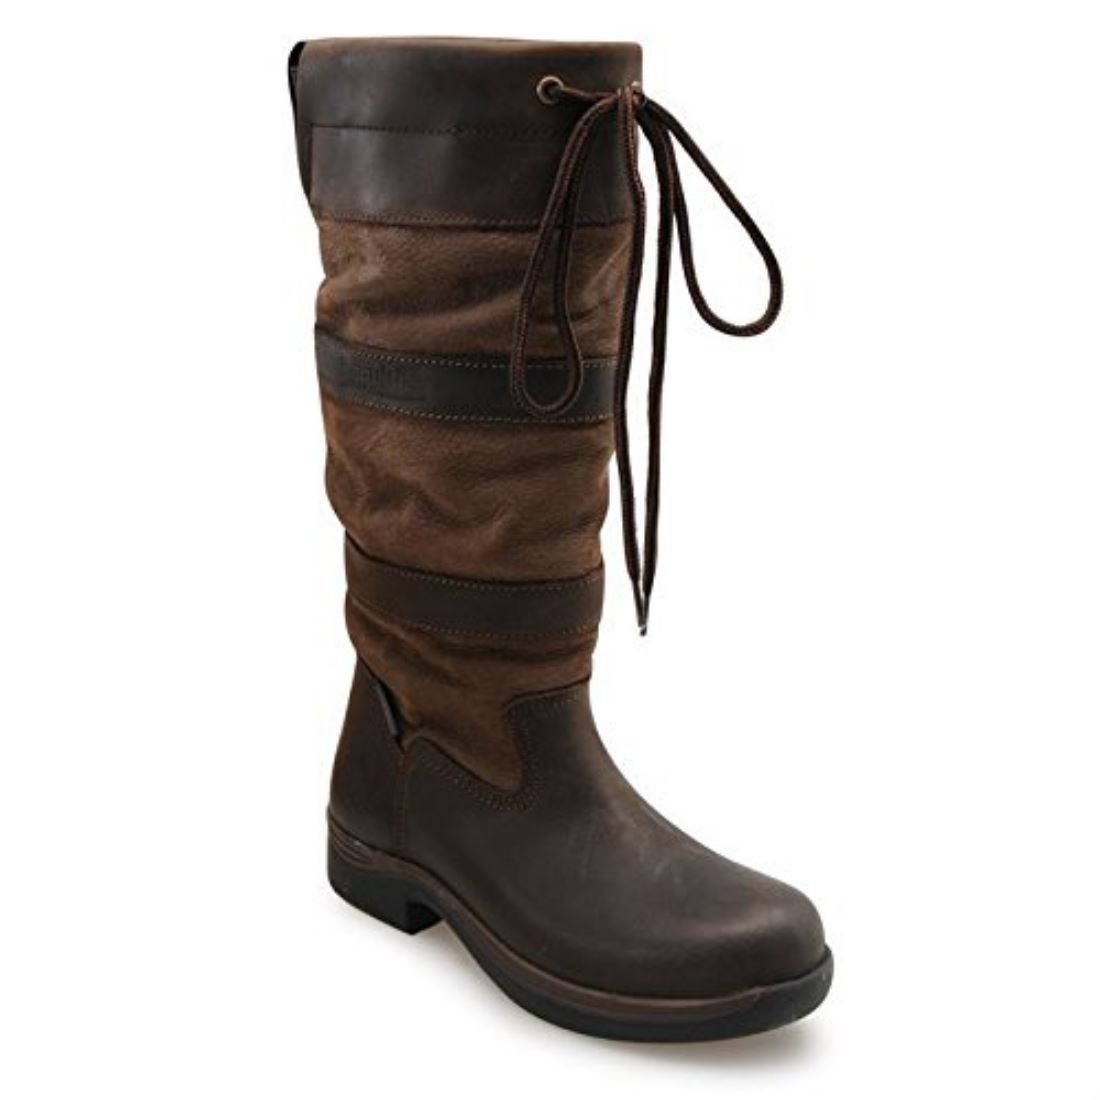 Luxury English Riding Boots For Women | Horseback Riding Shoes | Shoes | Pinterest | For Women Black ...